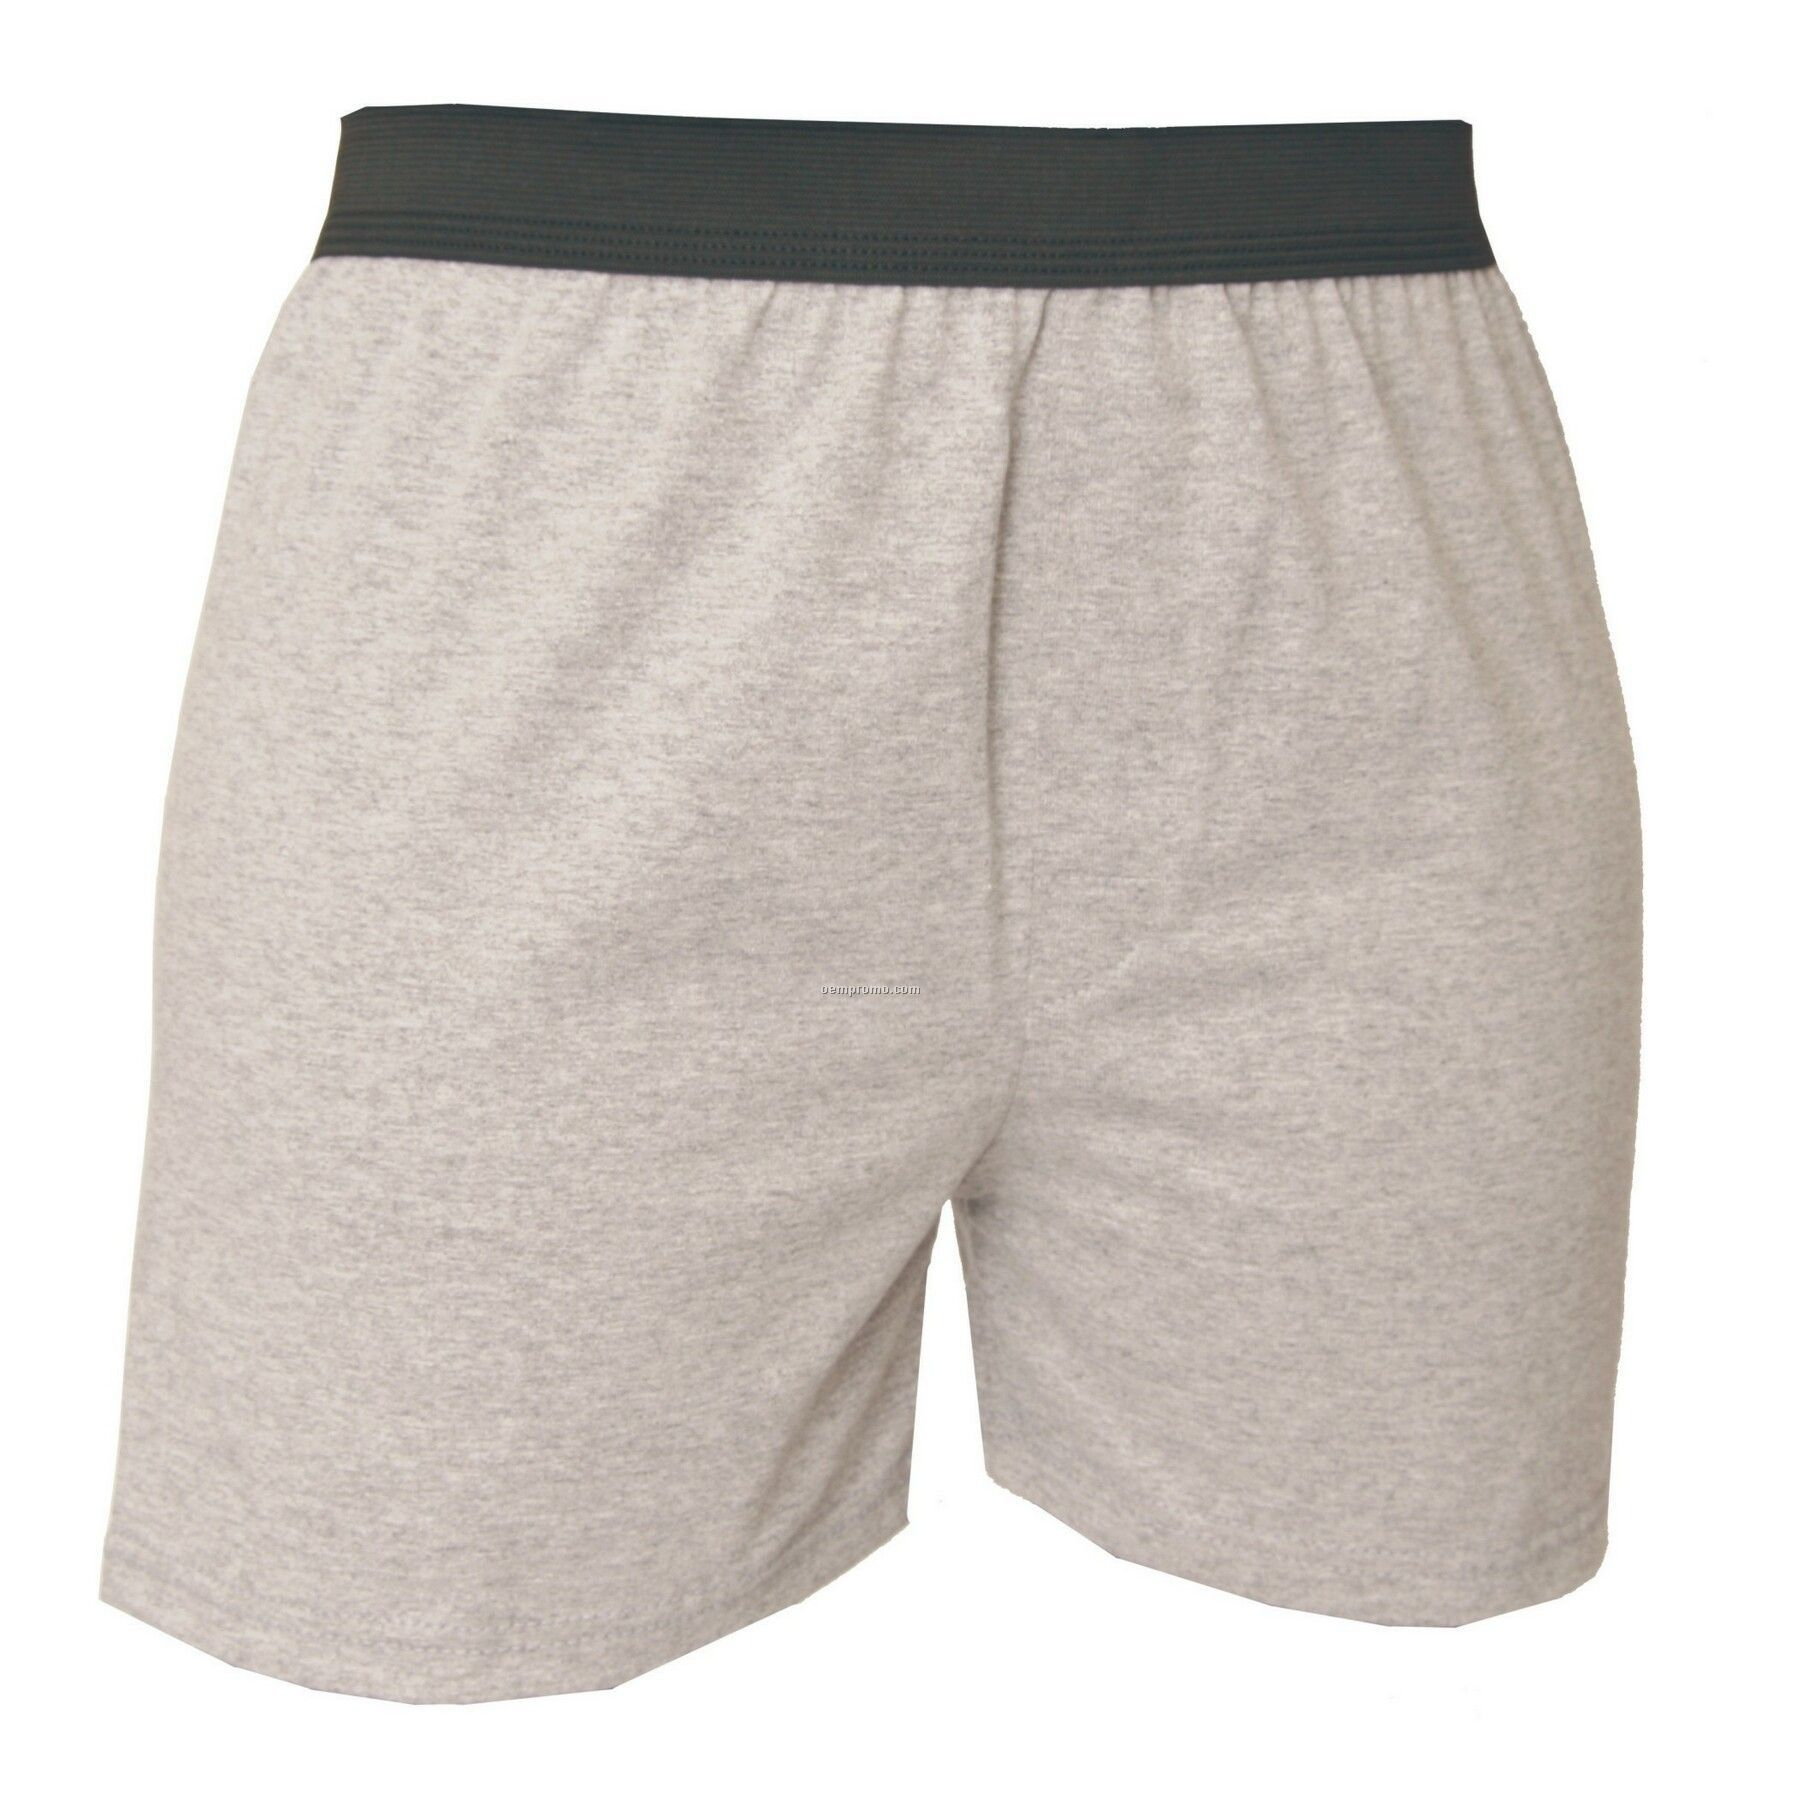 Youth Heather Gray Back To Basic Boxer